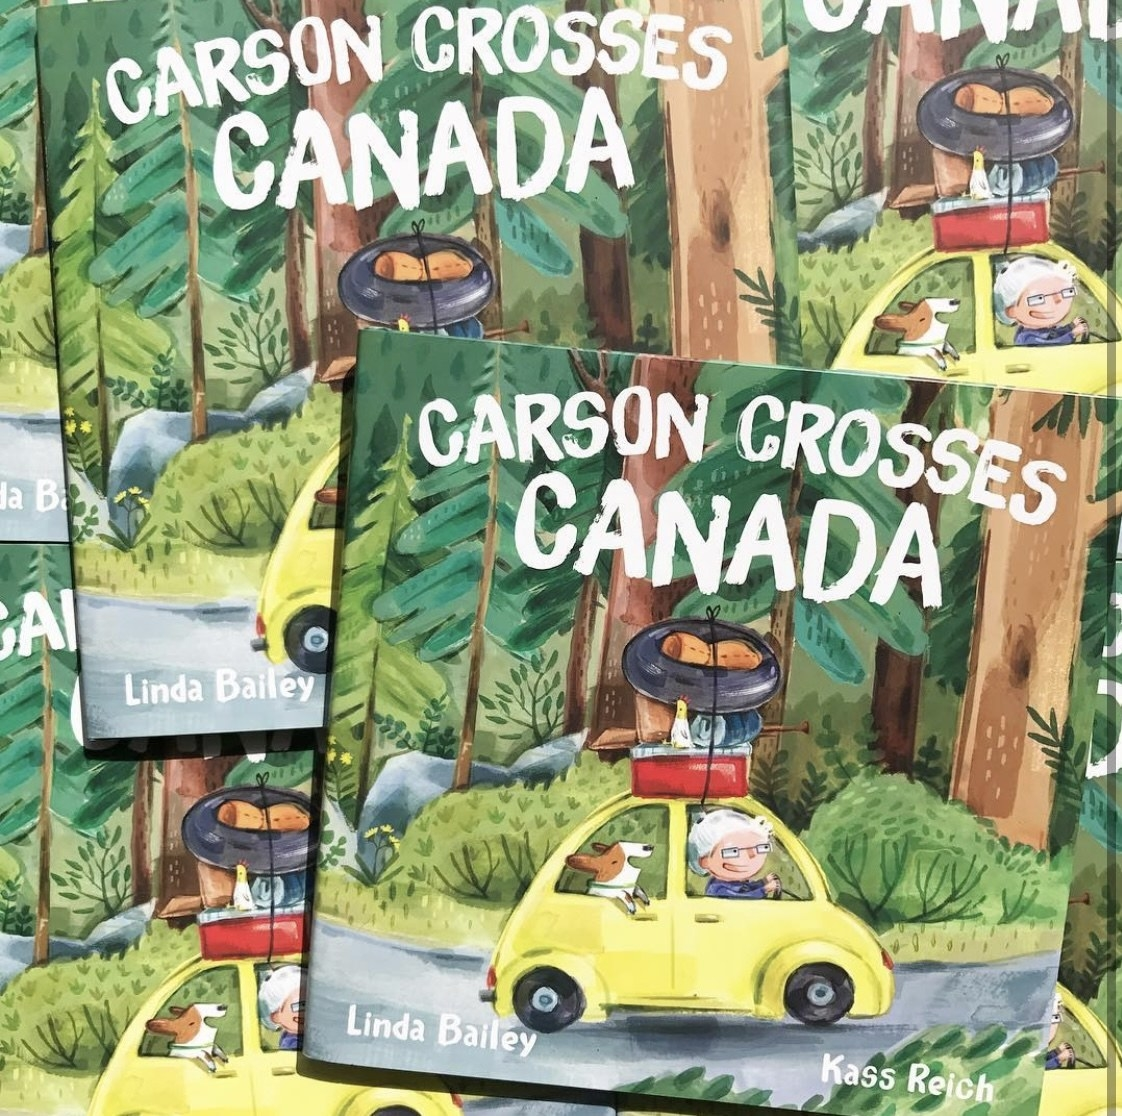 multiple copies of Carson Crosses Canada laid on top of each other with the illustration on the cover of an elderly woman and her dog in a yellow car driving through the forest